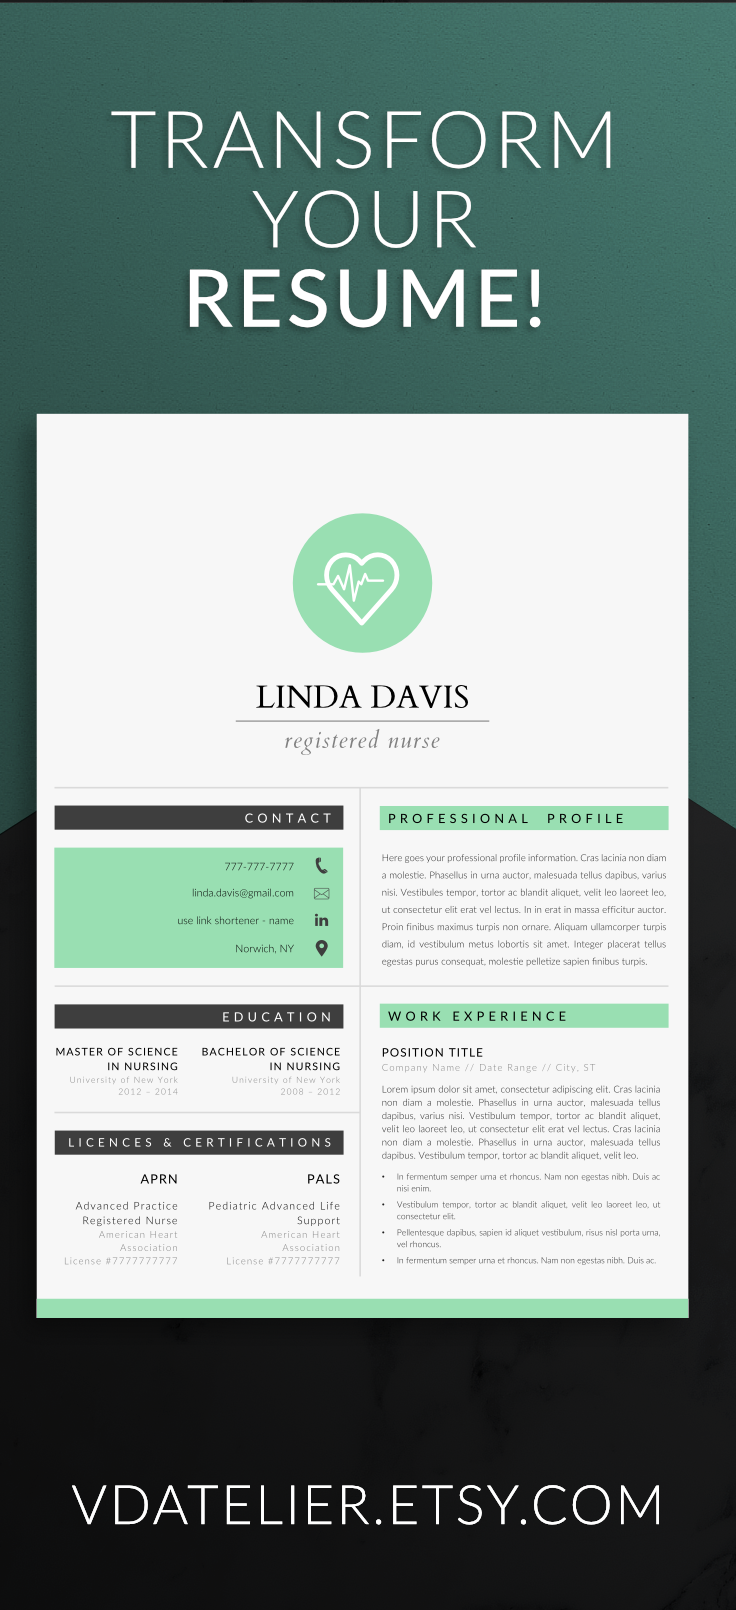 Nurse Resume Template For Modern Professionals. Suitable As Medical